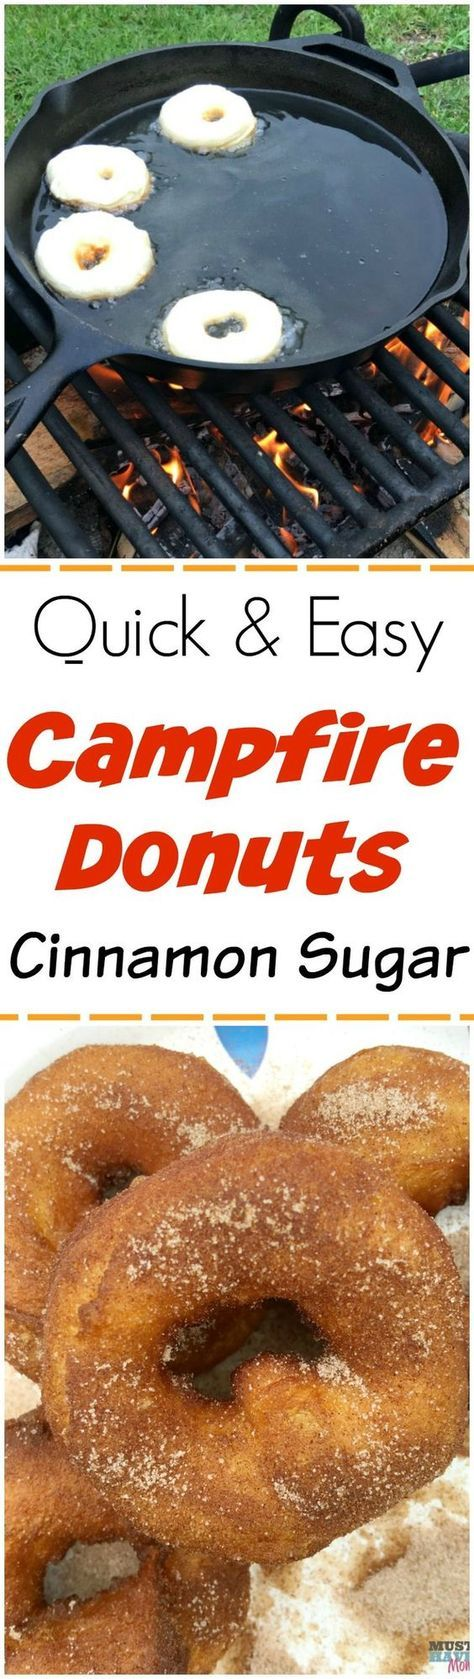 Easy campfire recipes! These campfire donuts are our kids favorite of all our camping recipes! Great camping breakfast or dessert idea.